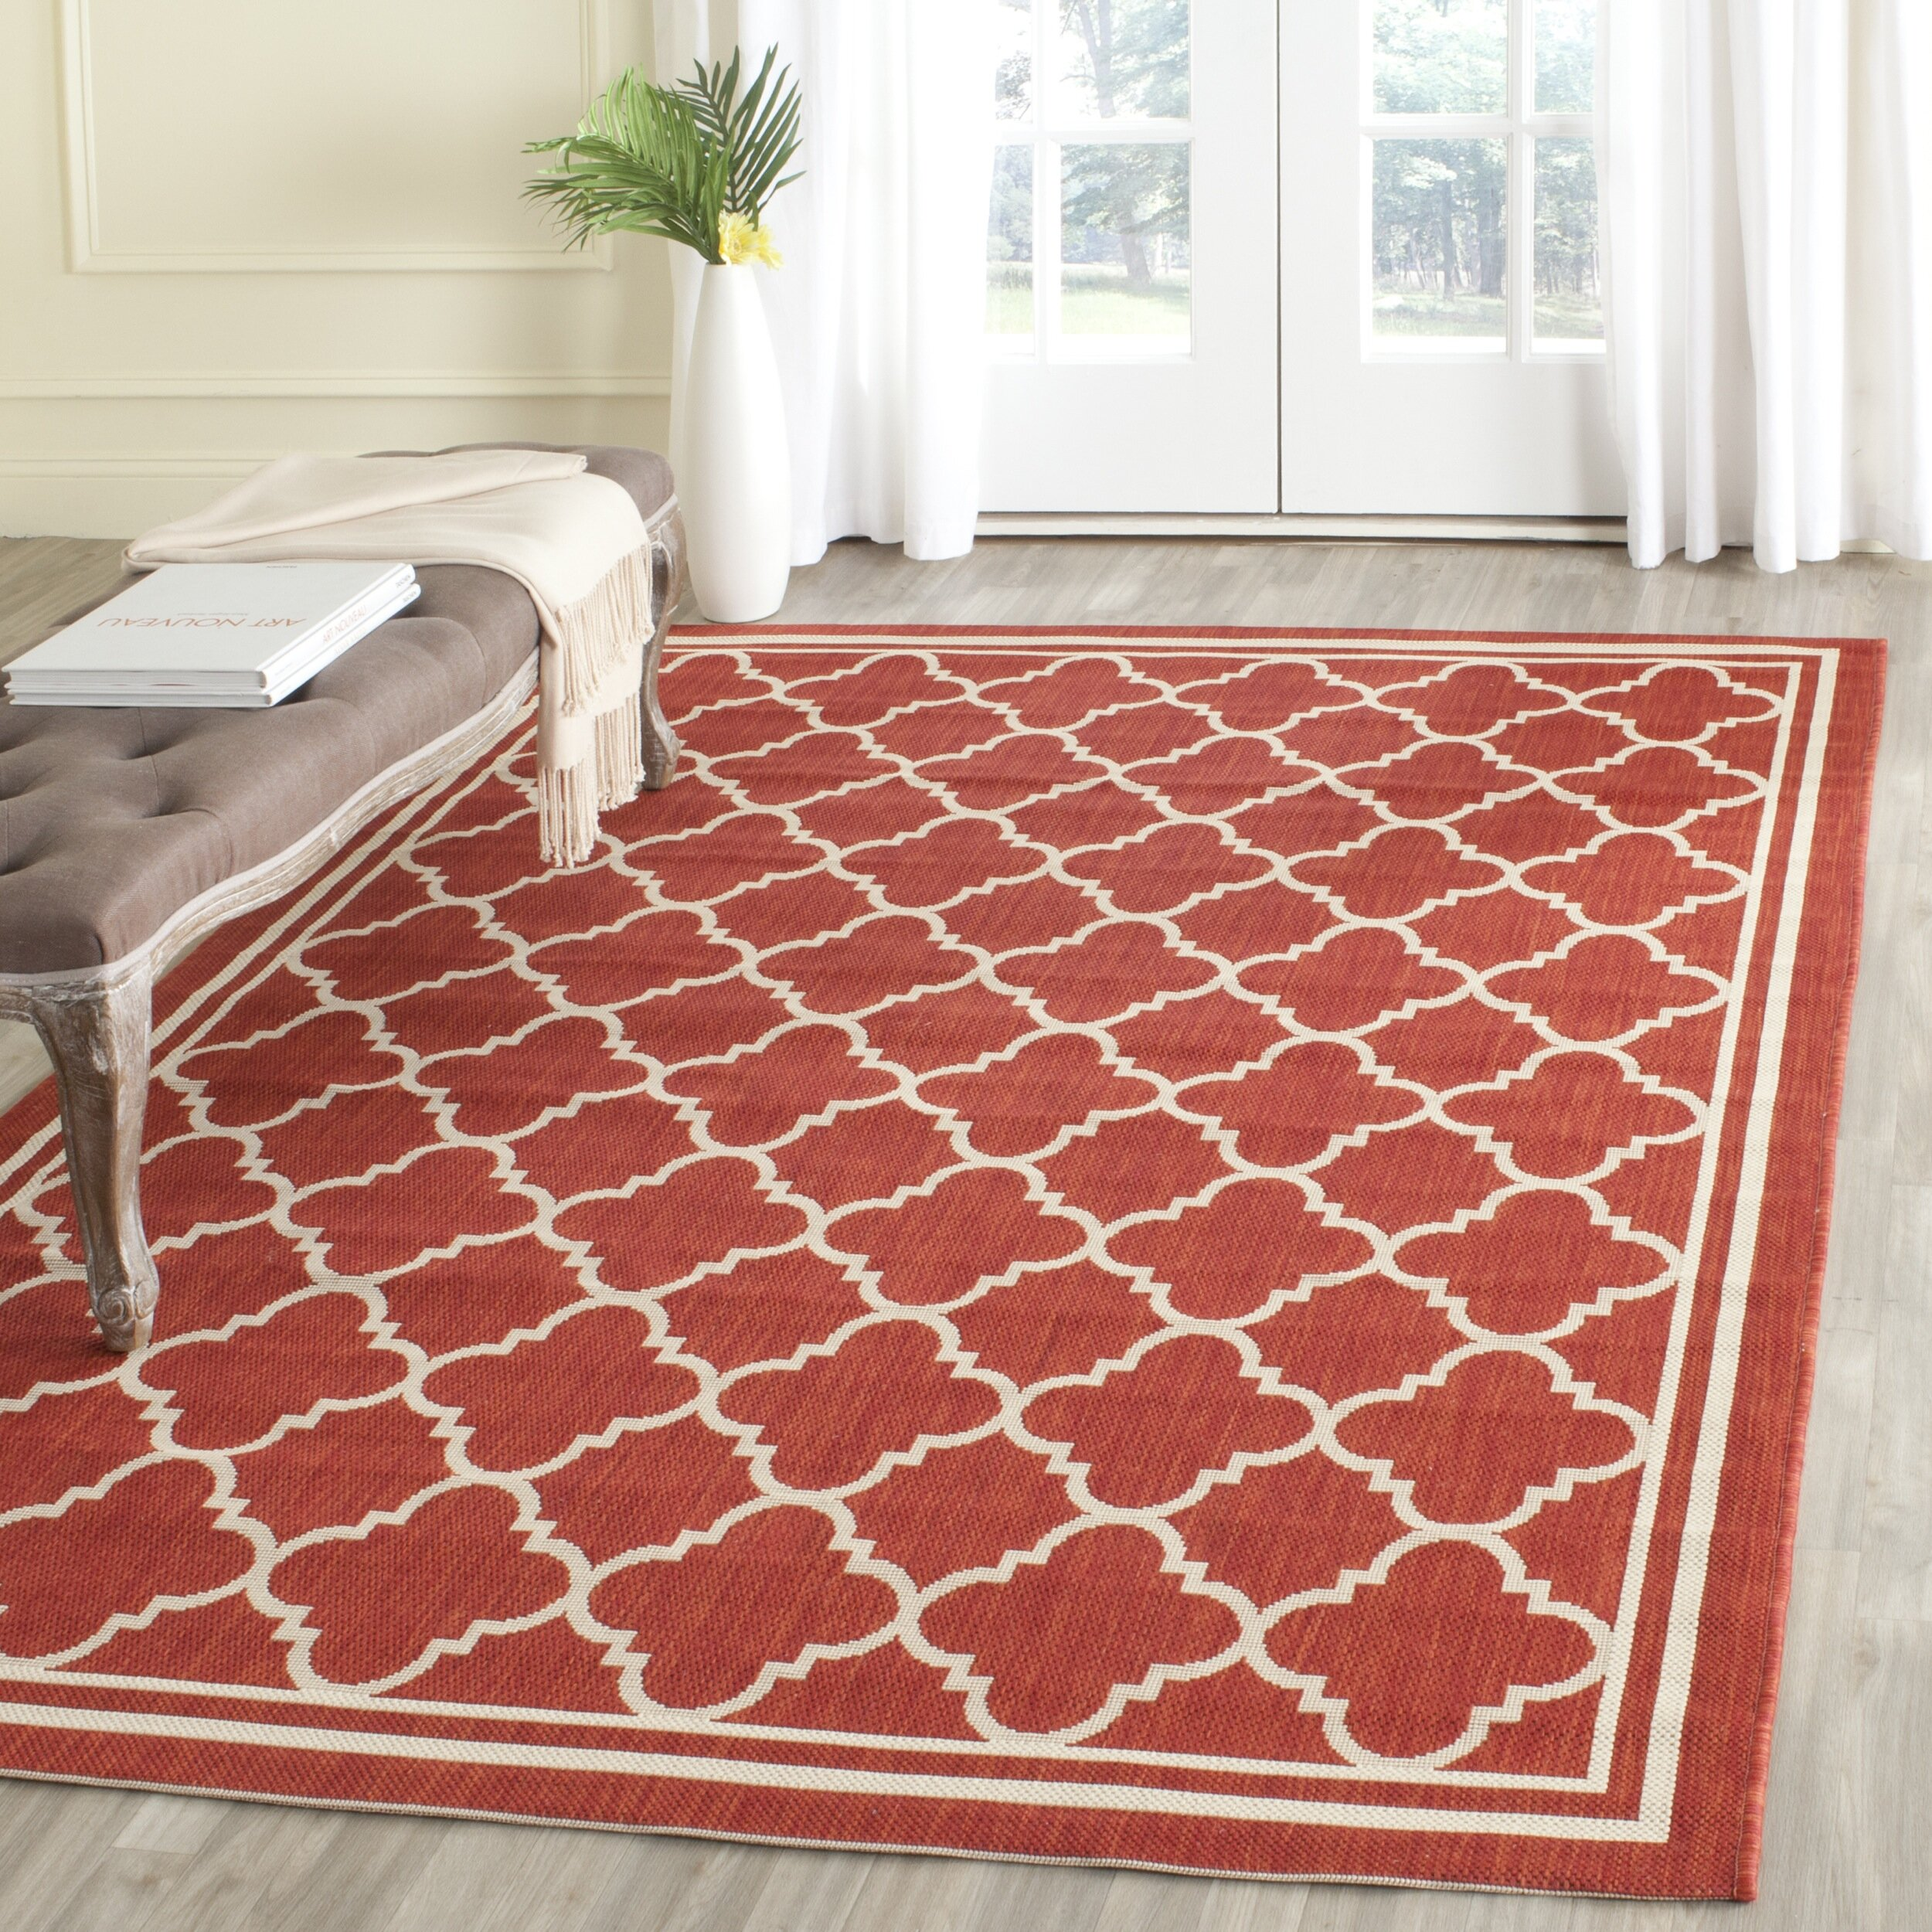 Safavieh courtyard red bone indoor outdoor area rug for Indoor out door rugs